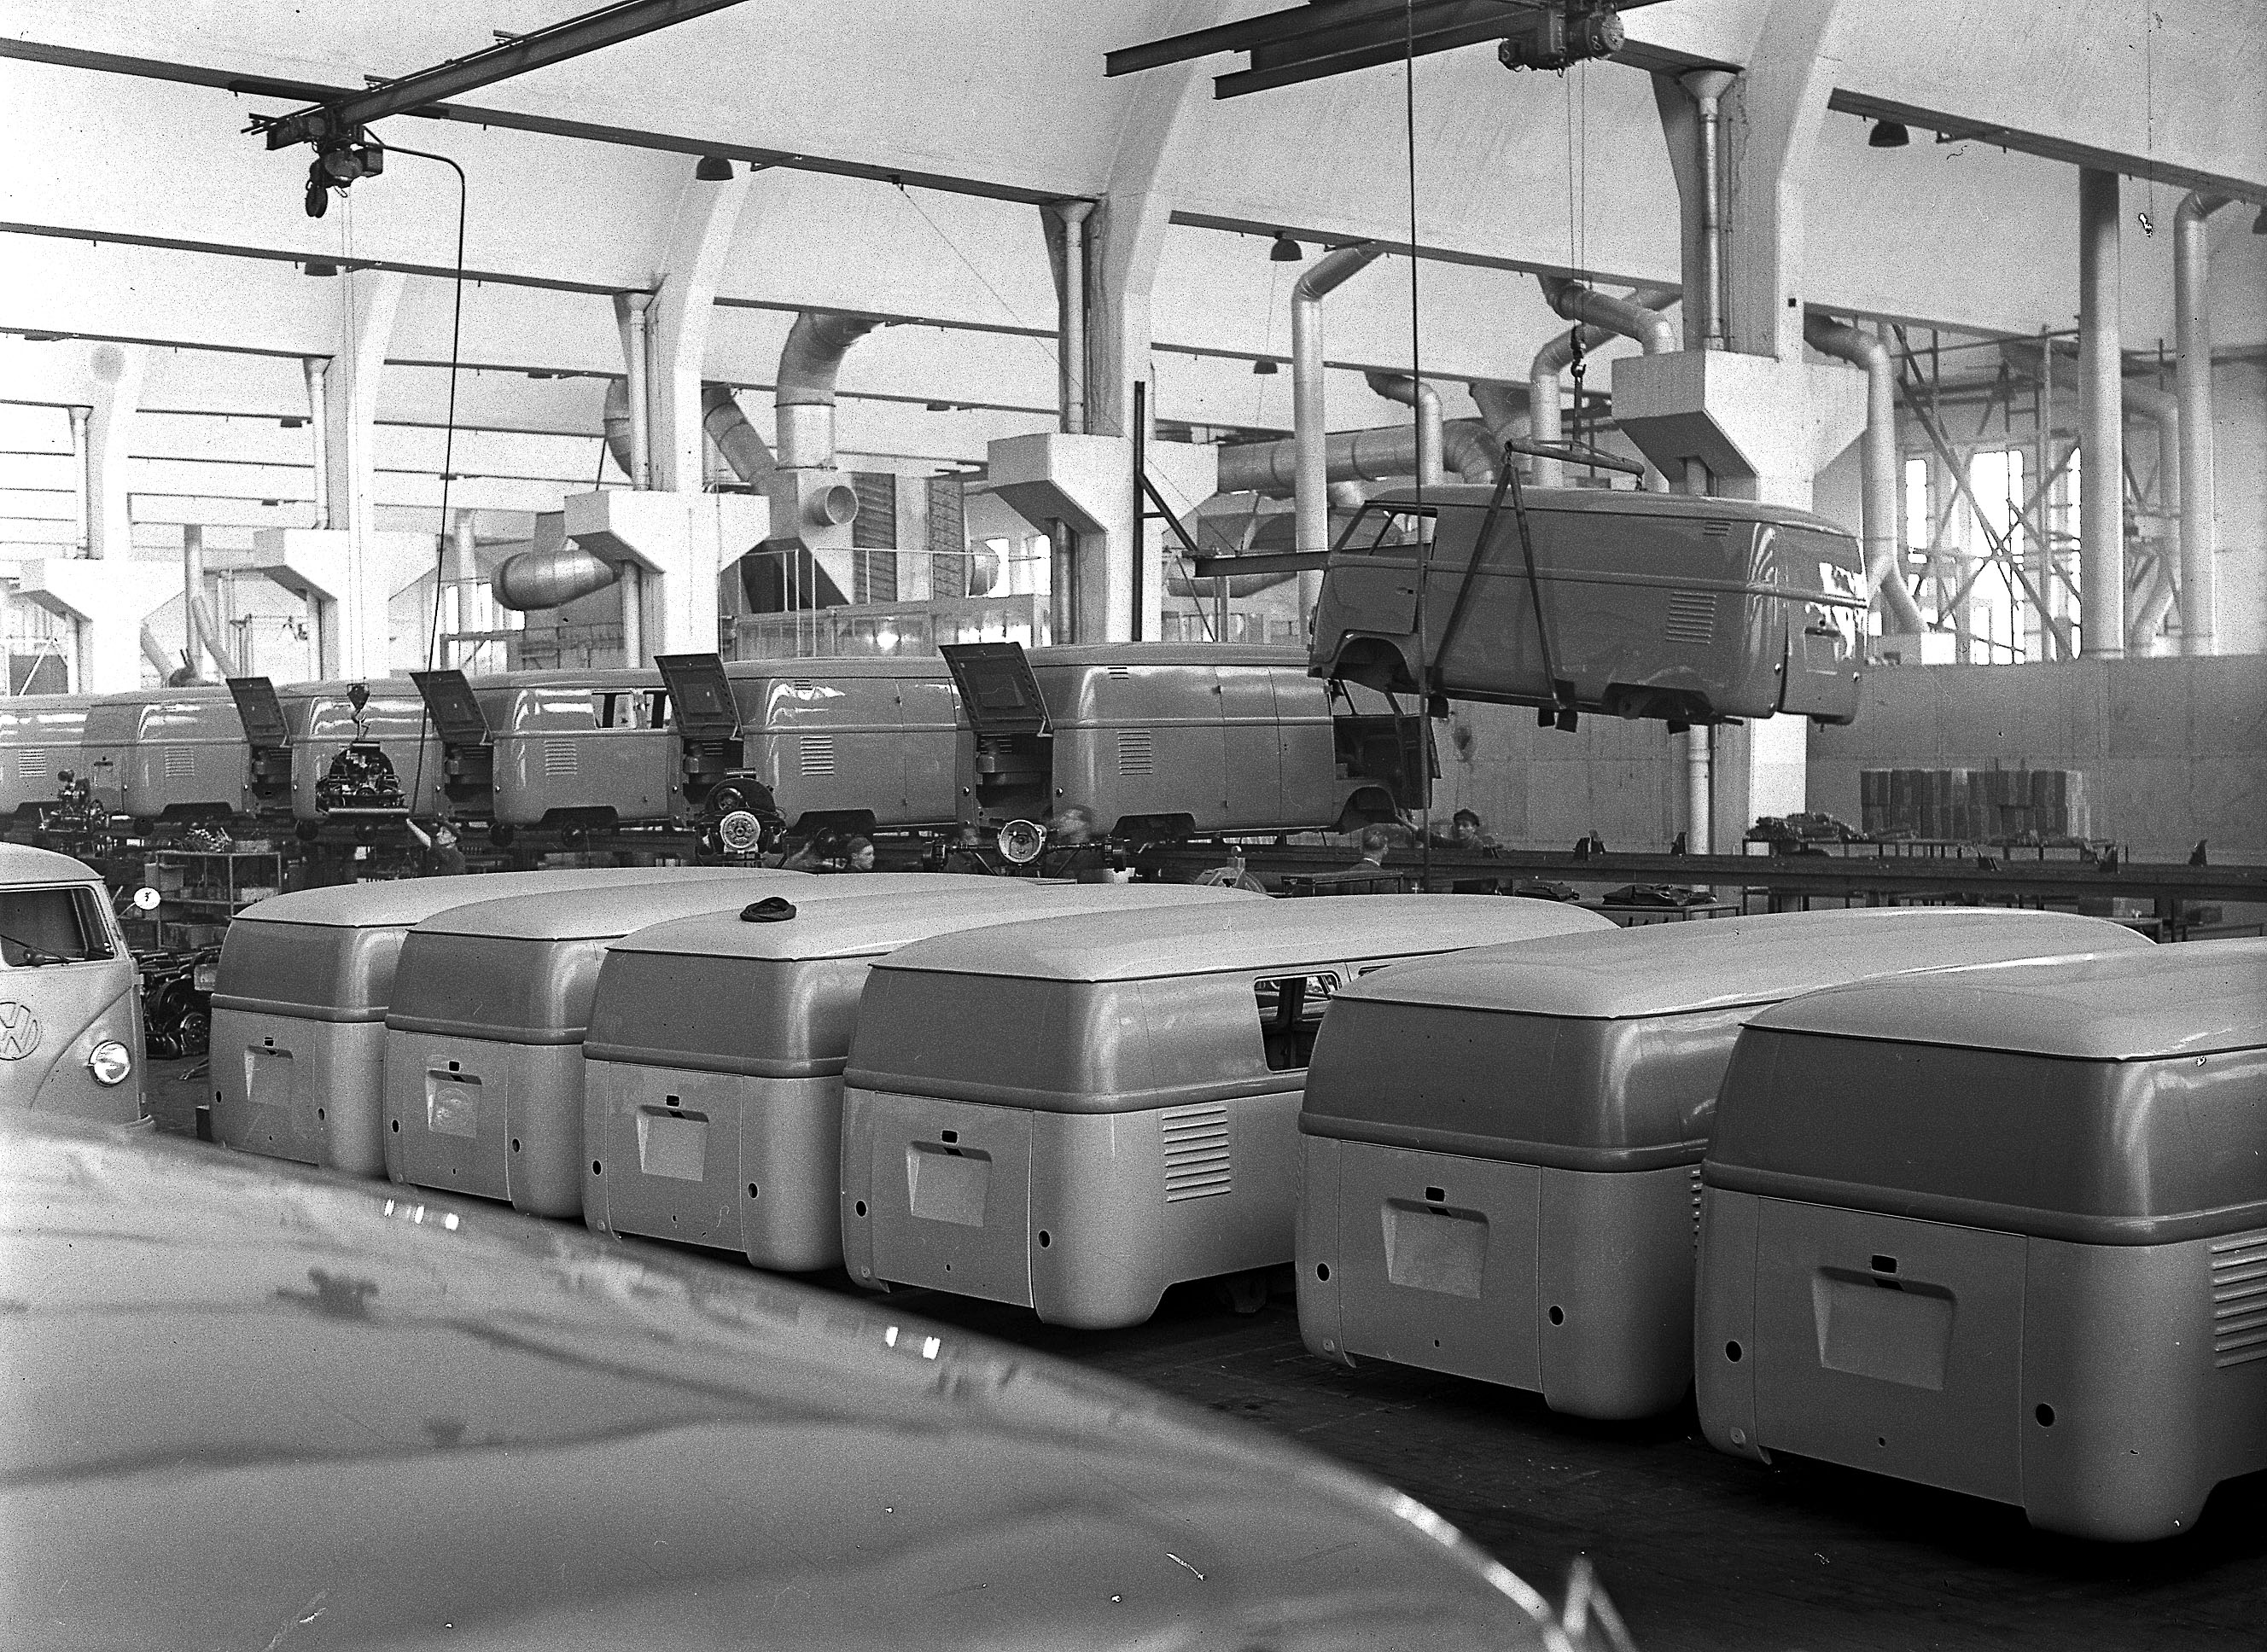 Transporter Production At Wolfsburg 1950's